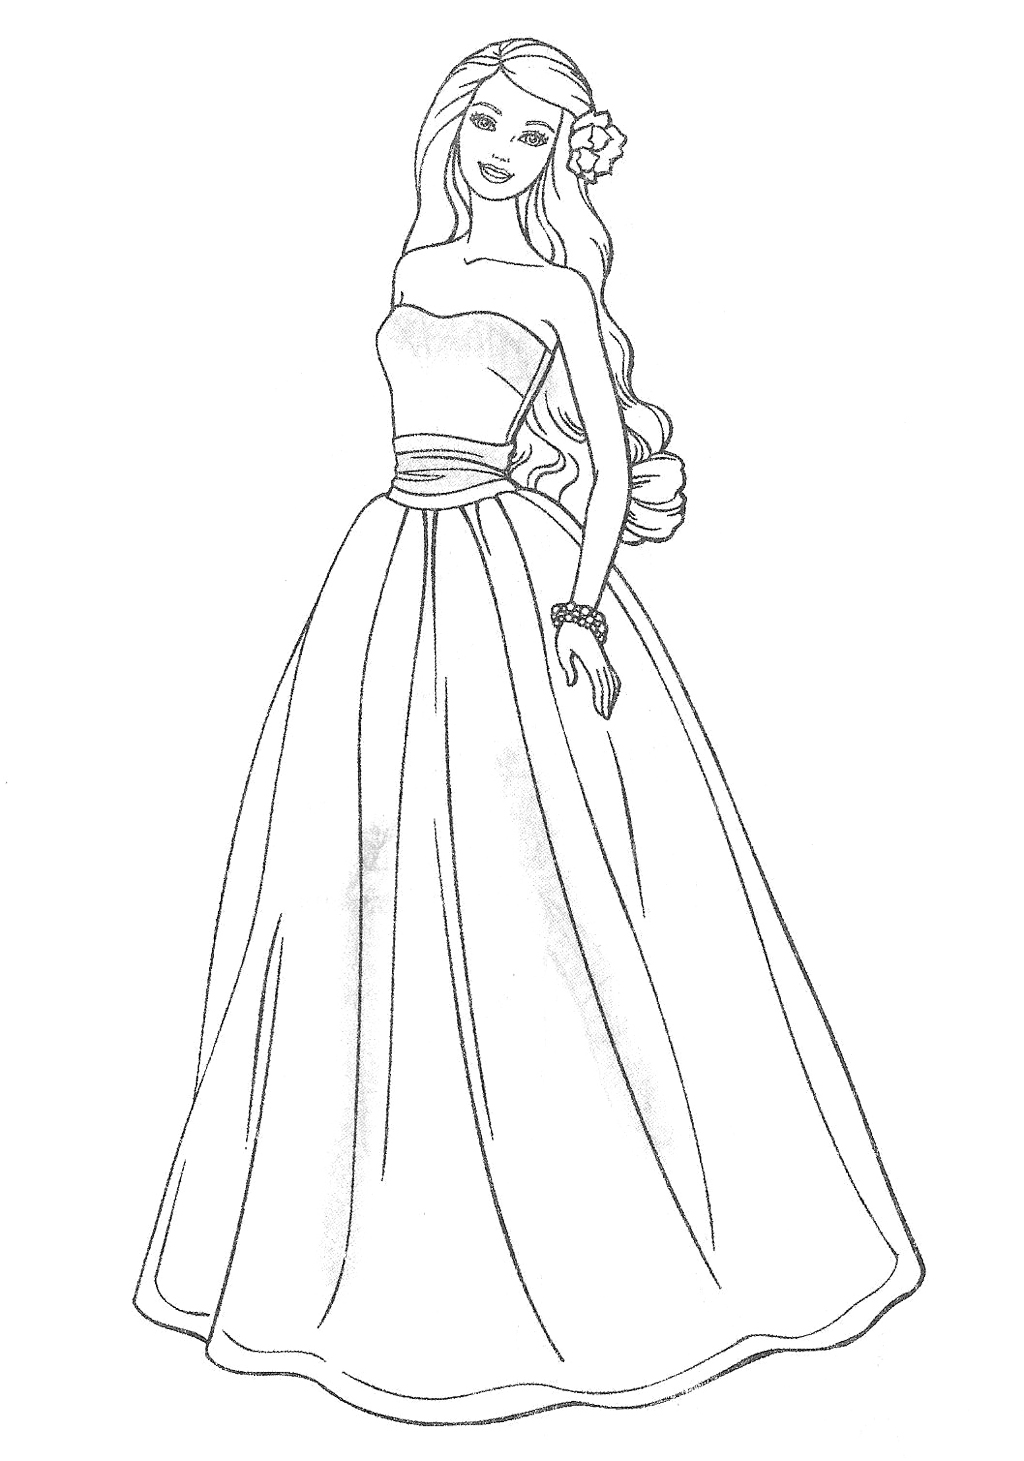 dress coloring pictures dress coloring pages to download and print for free dress coloring pictures